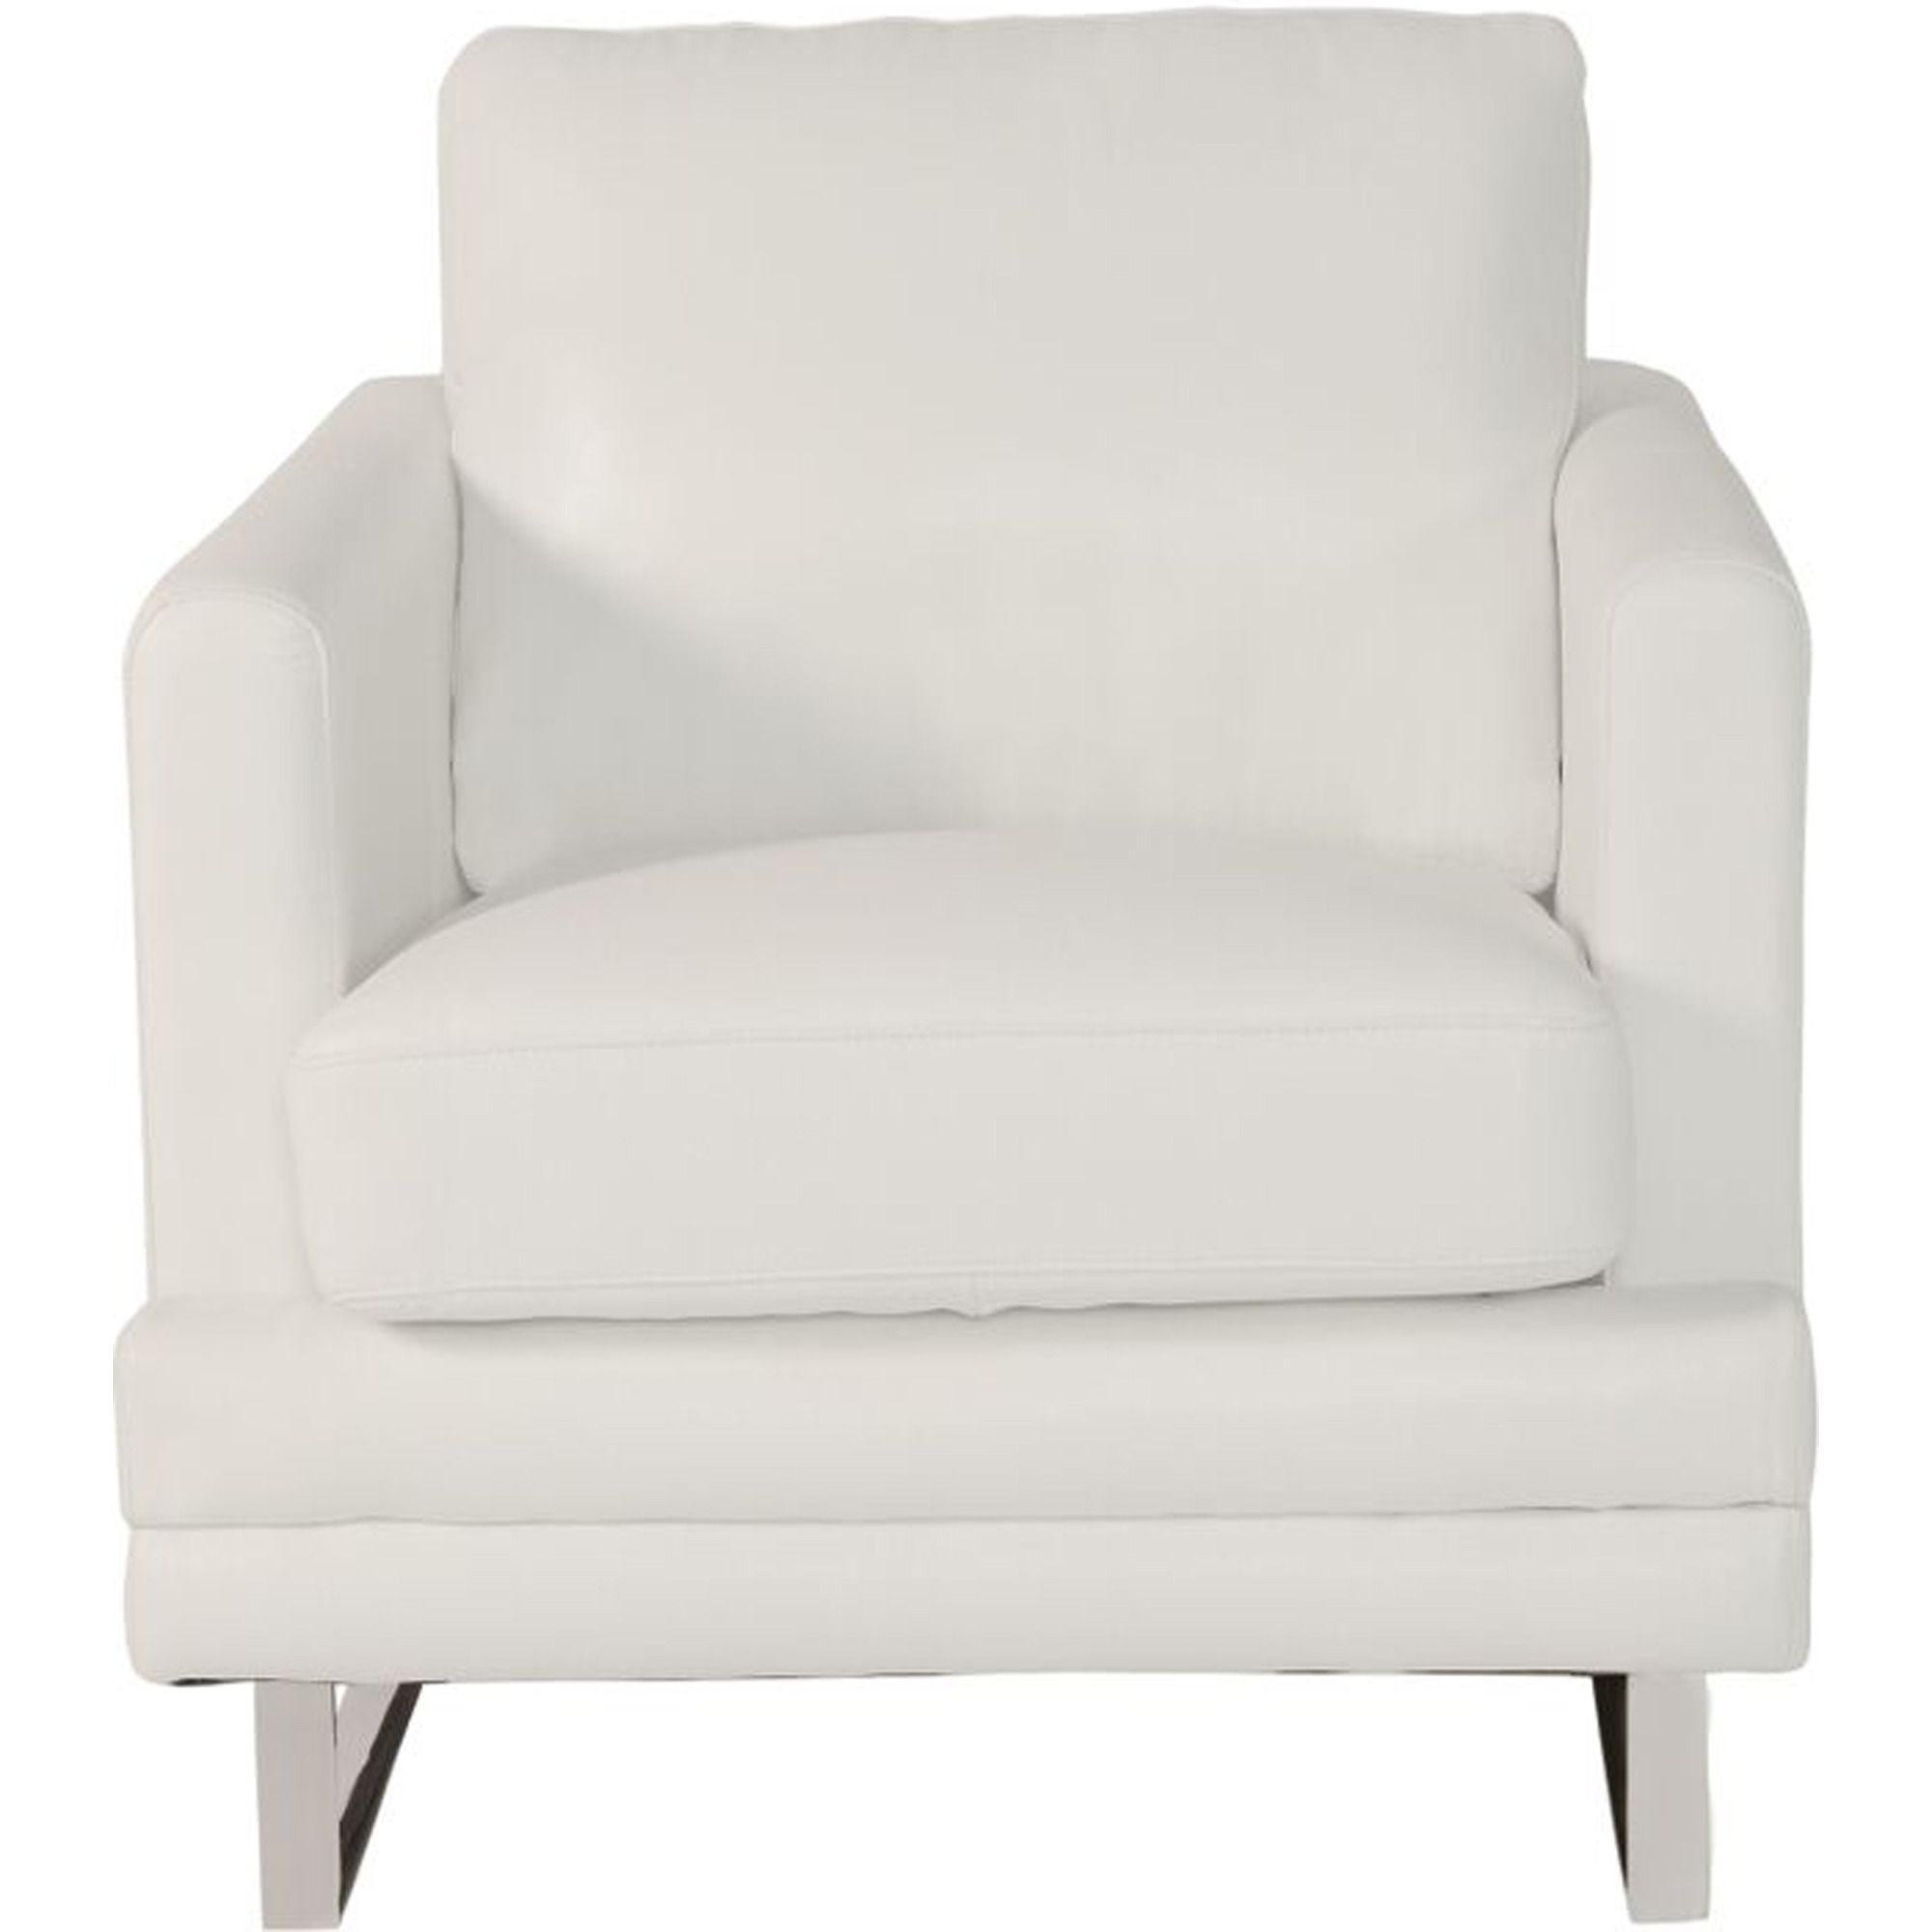 Accent Chairs Melbourne Melbourne Chair In White Lazzaro Leather Home Gallery